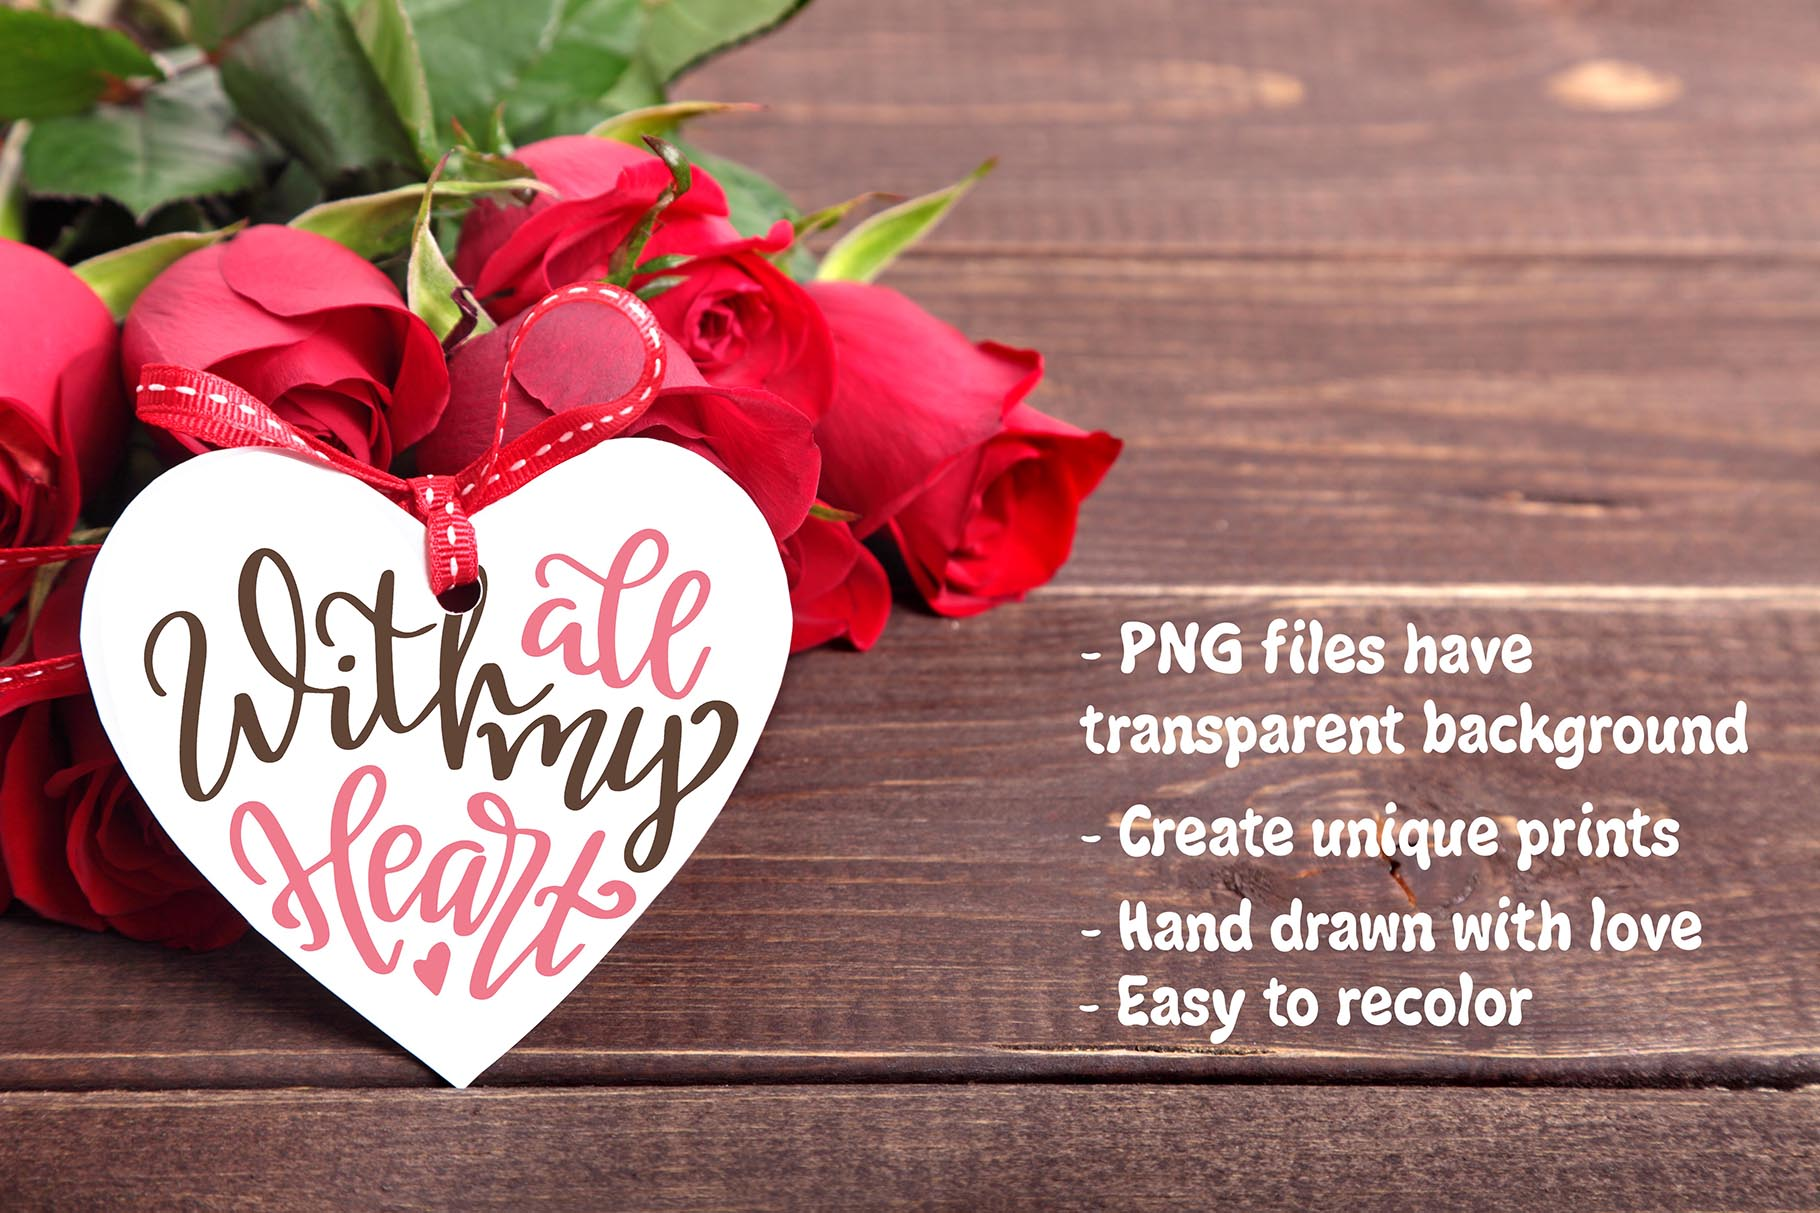 Quotes About Love - Lettering Pack Graphic By tregubova.jul Image 7